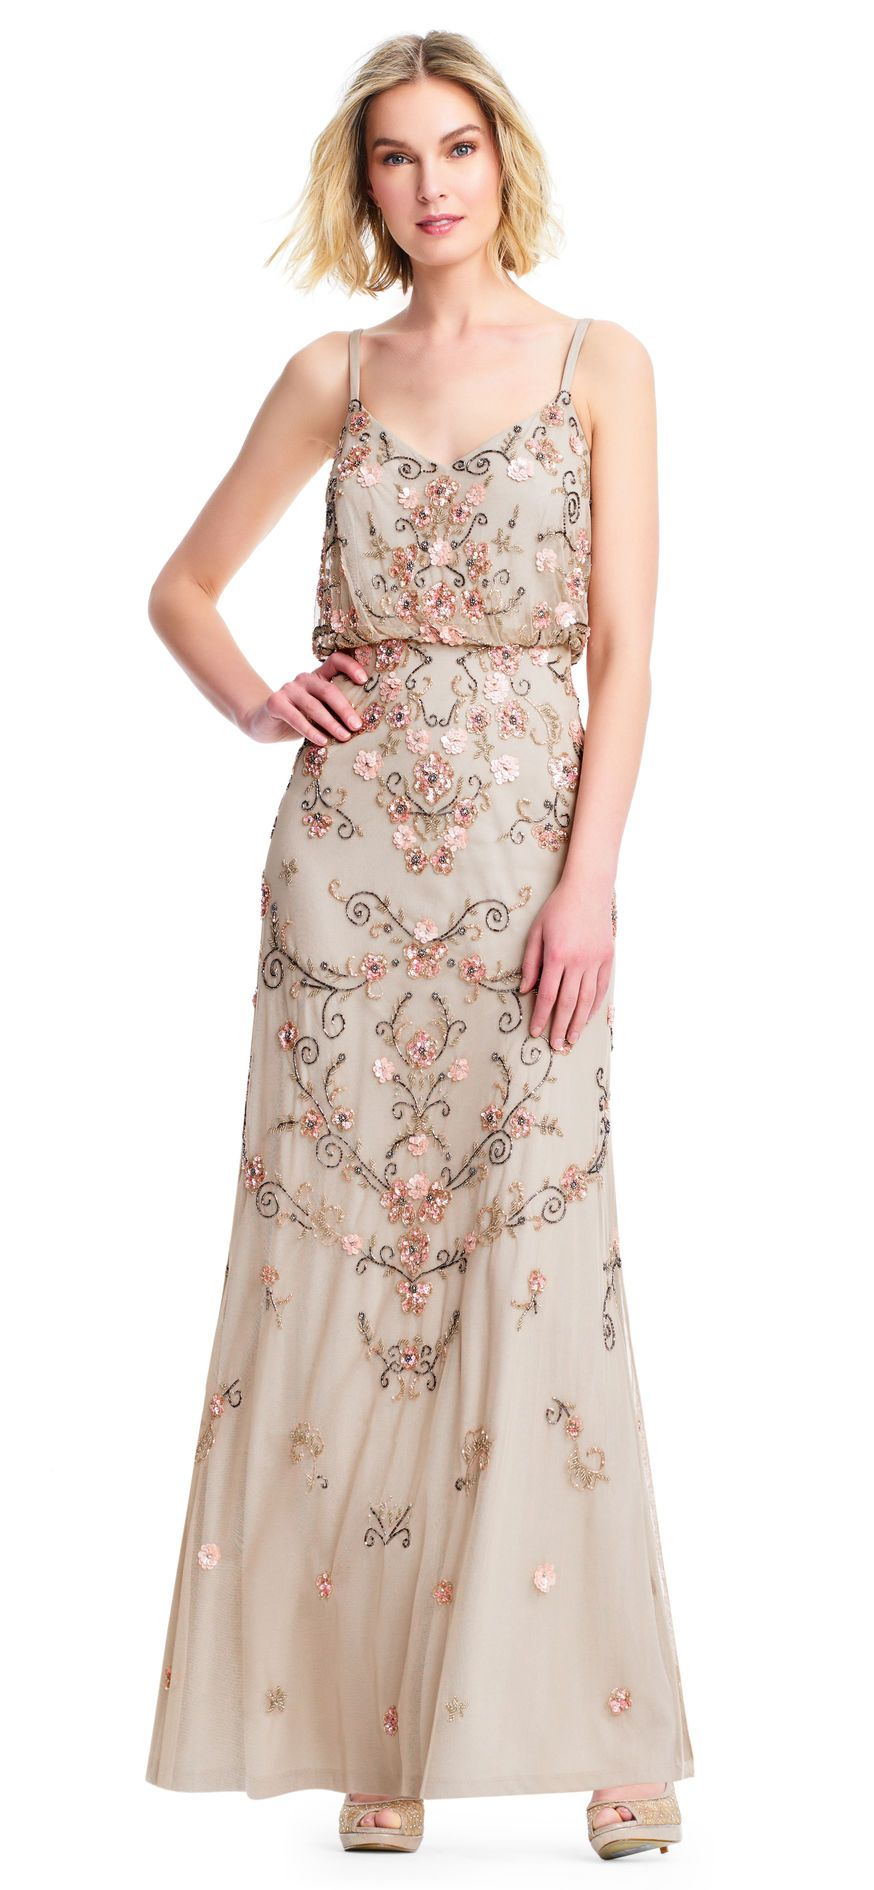 Boho Floral Beaded Blouson Gown What To Wear As A Guest At A